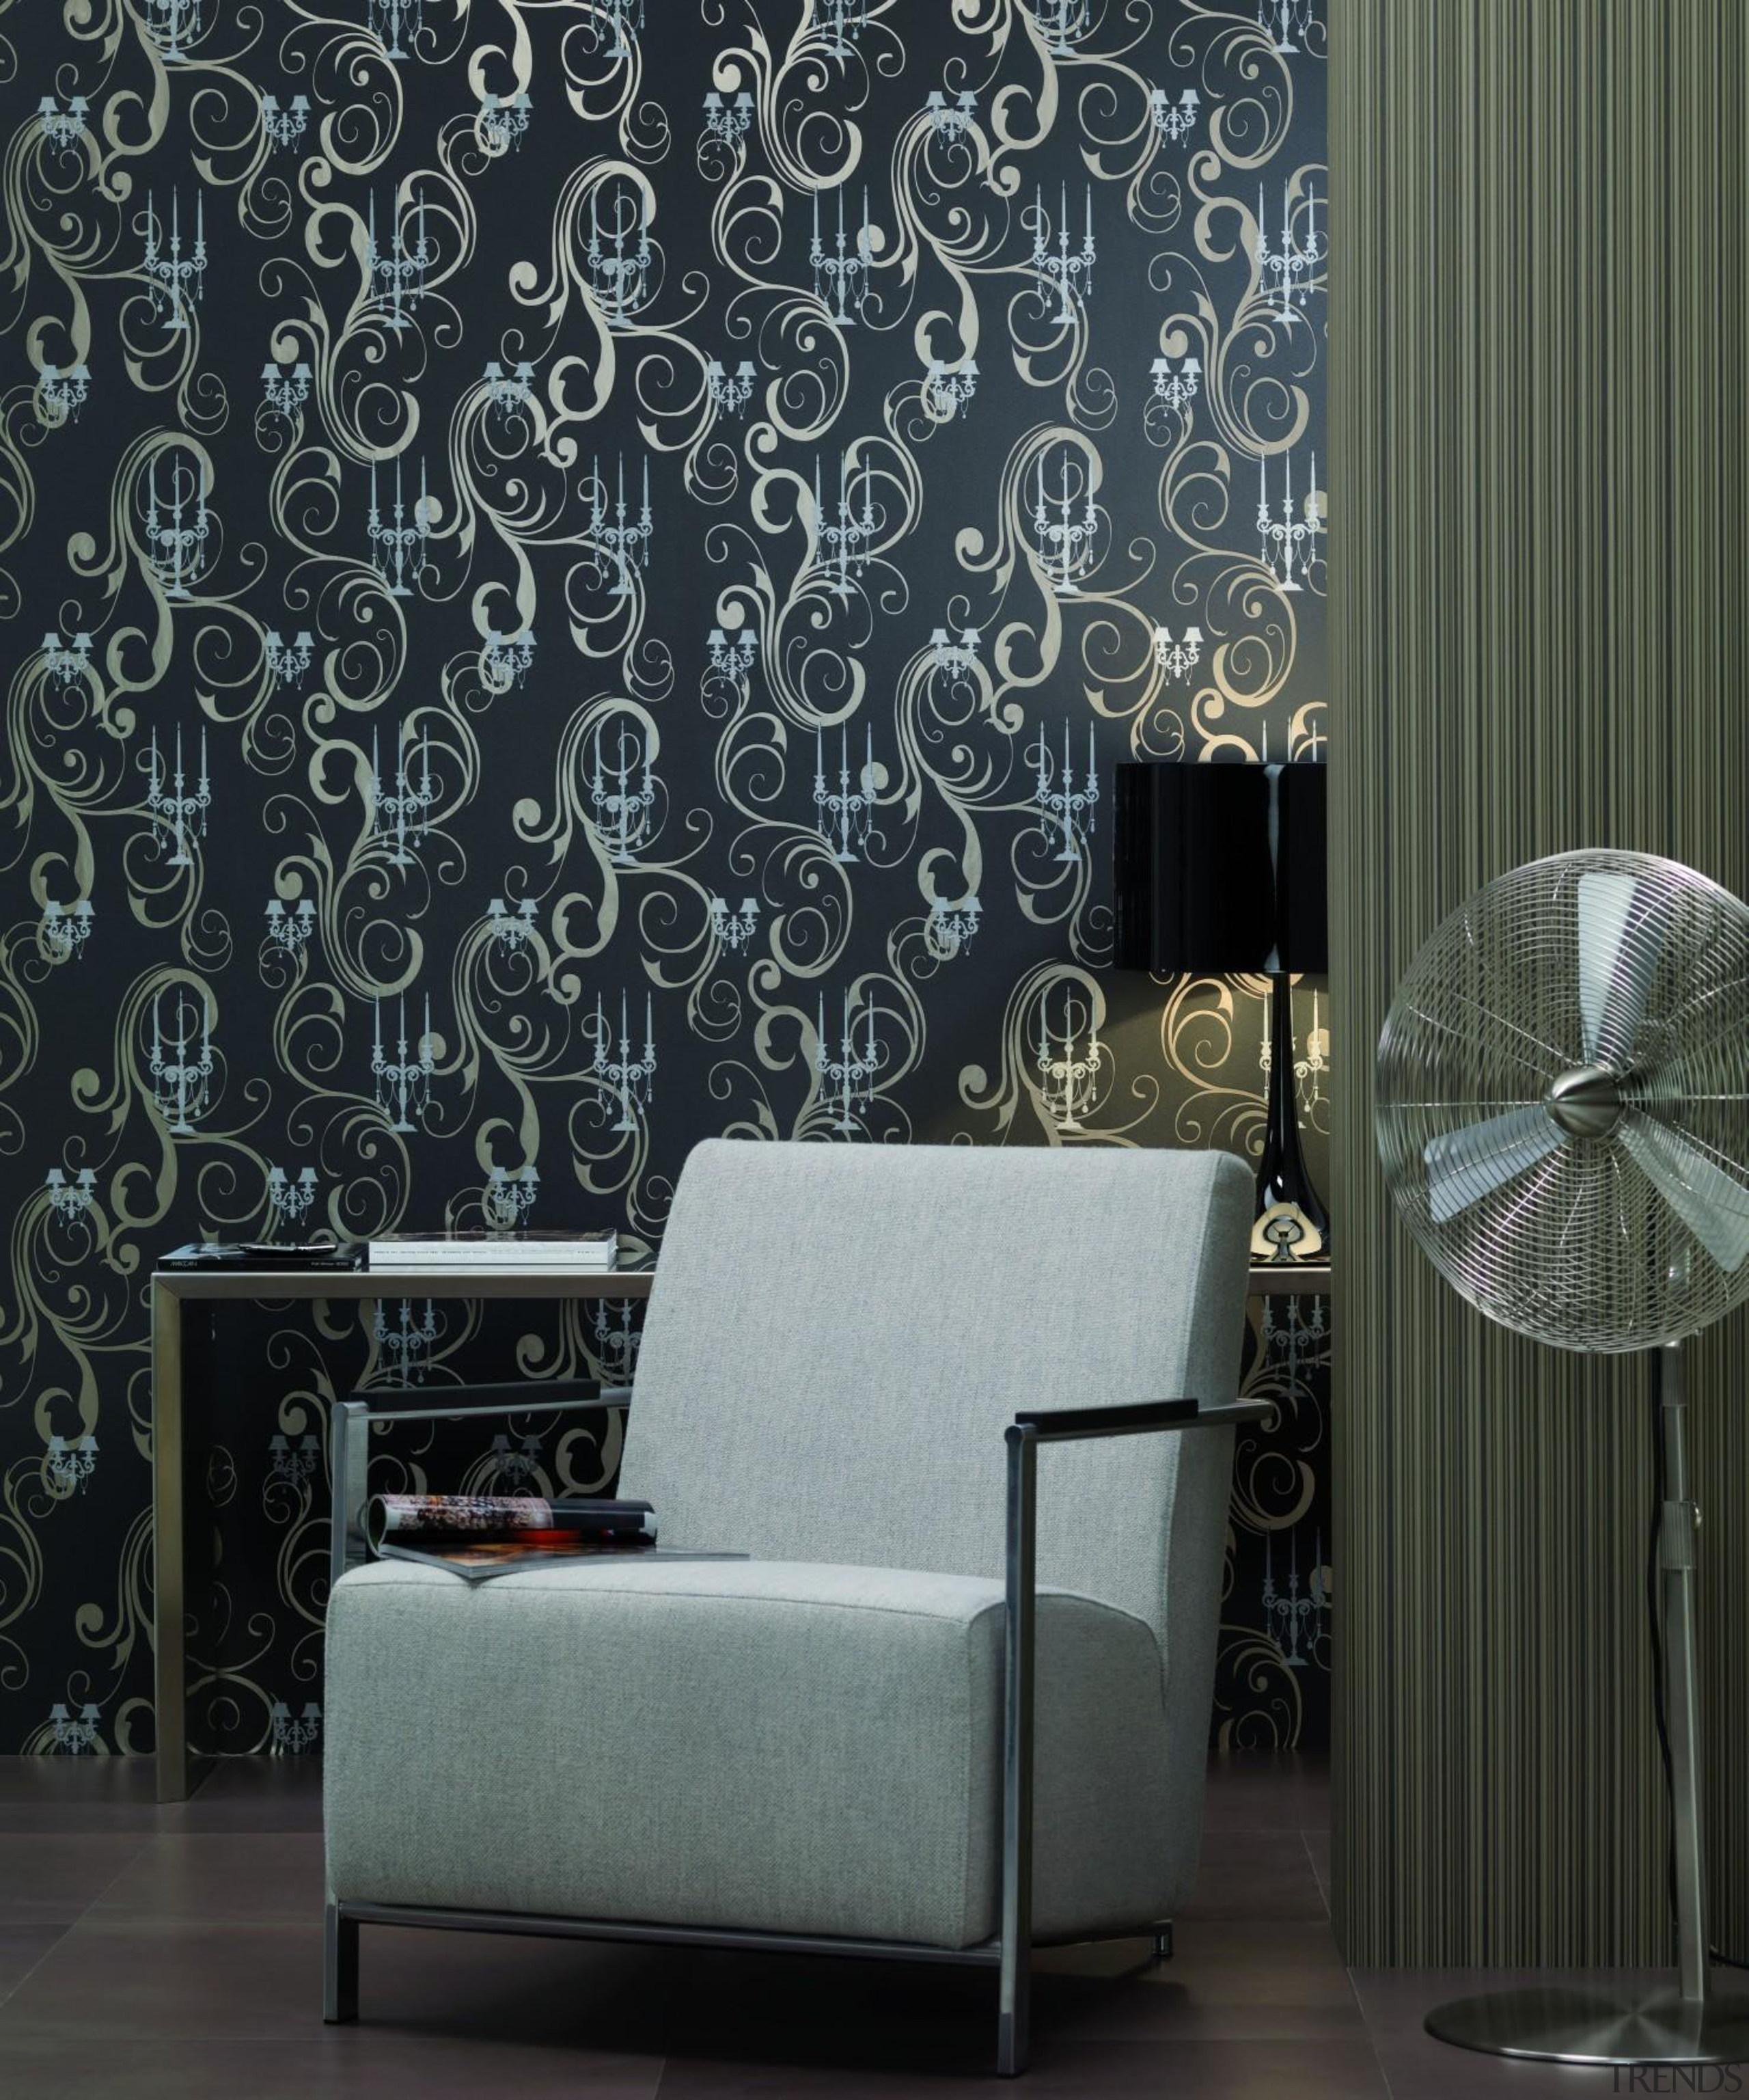 Modern Style Range - couch   curtain   couch, curtain, decor, interior design, living room, wall, wallpaper, window, window covering, window treatment, black, gray